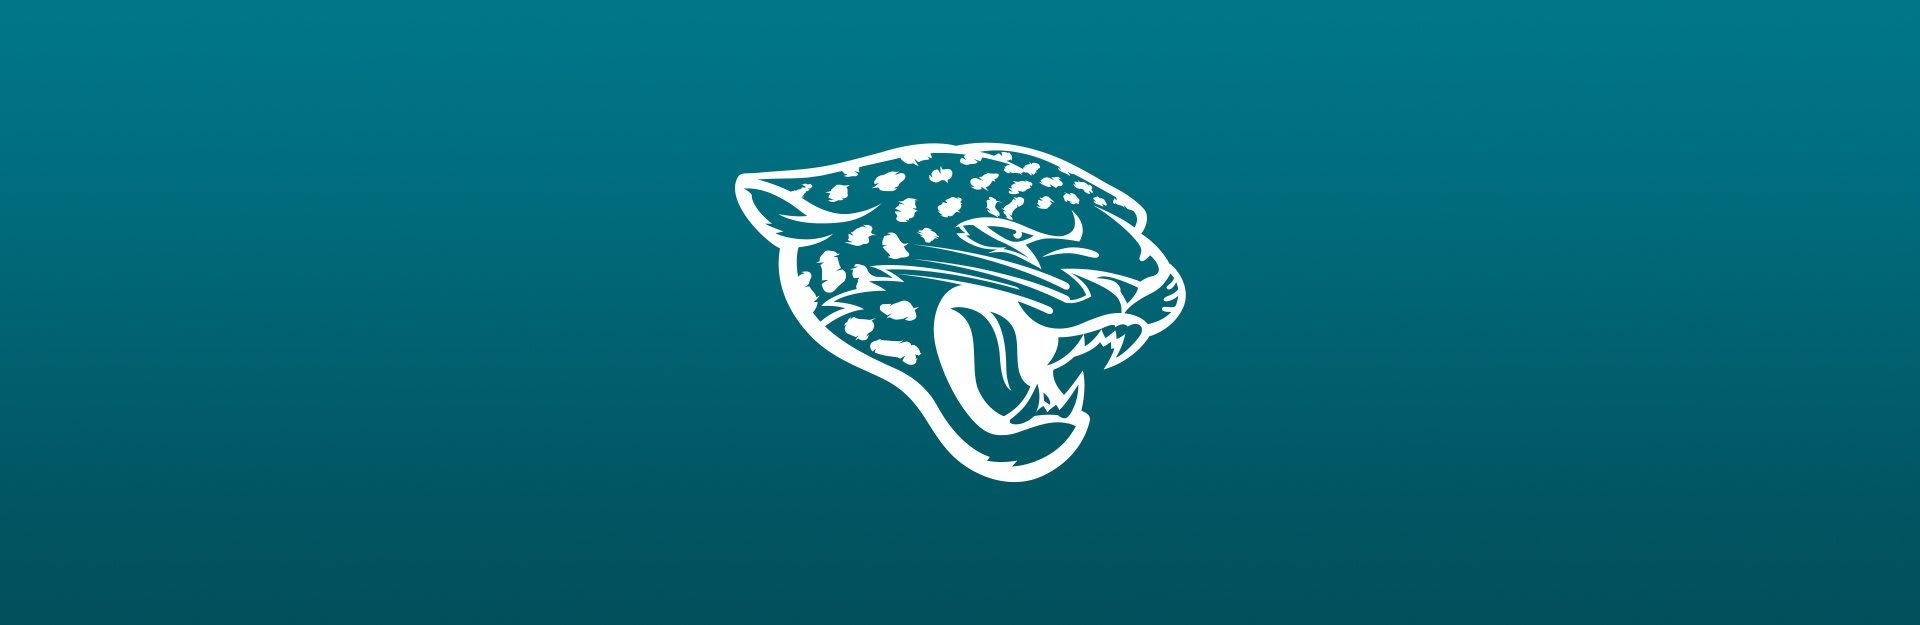 Jacksonville Jaguars logo on blue background